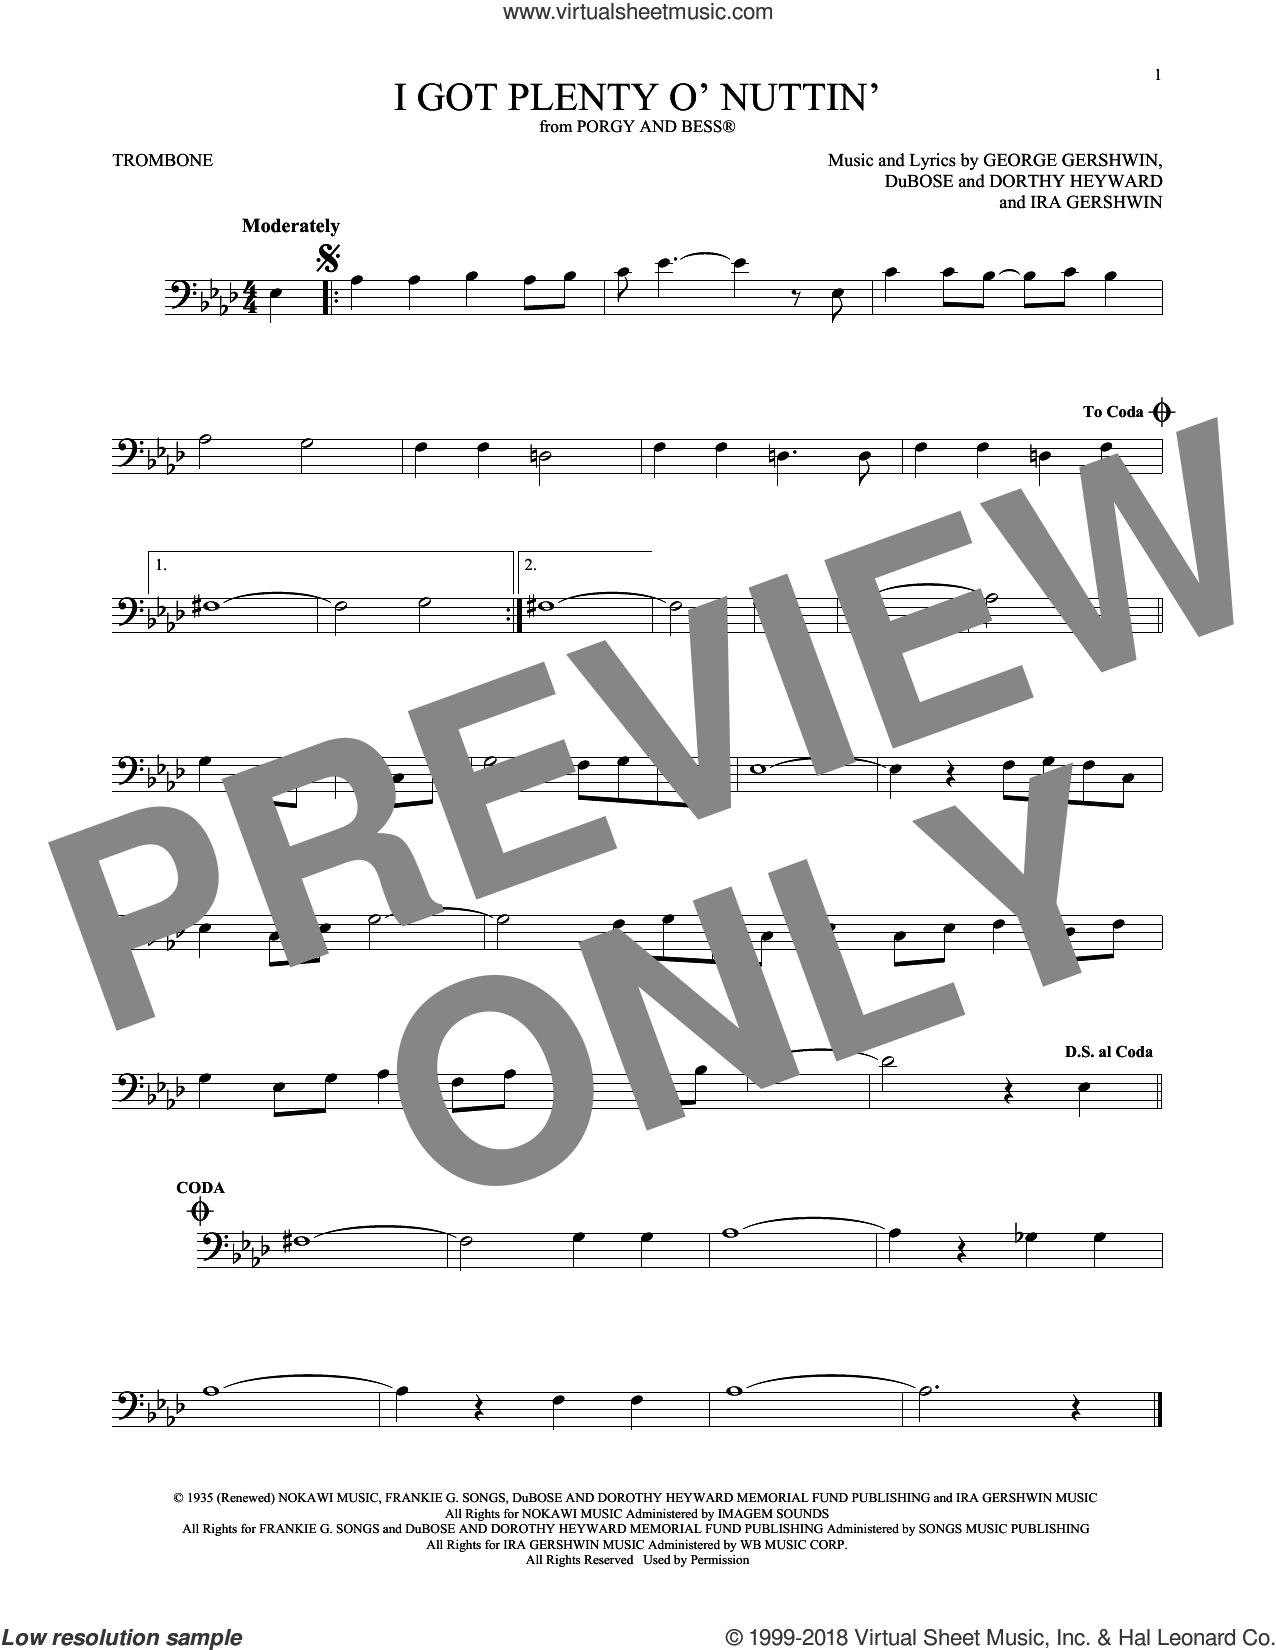 I Got Plenty O' Nuttin' sheet music for trombone solo by George Gershwin, Dorothy Heyward, DuBose Heyward and Ira Gershwin, intermediate skill level